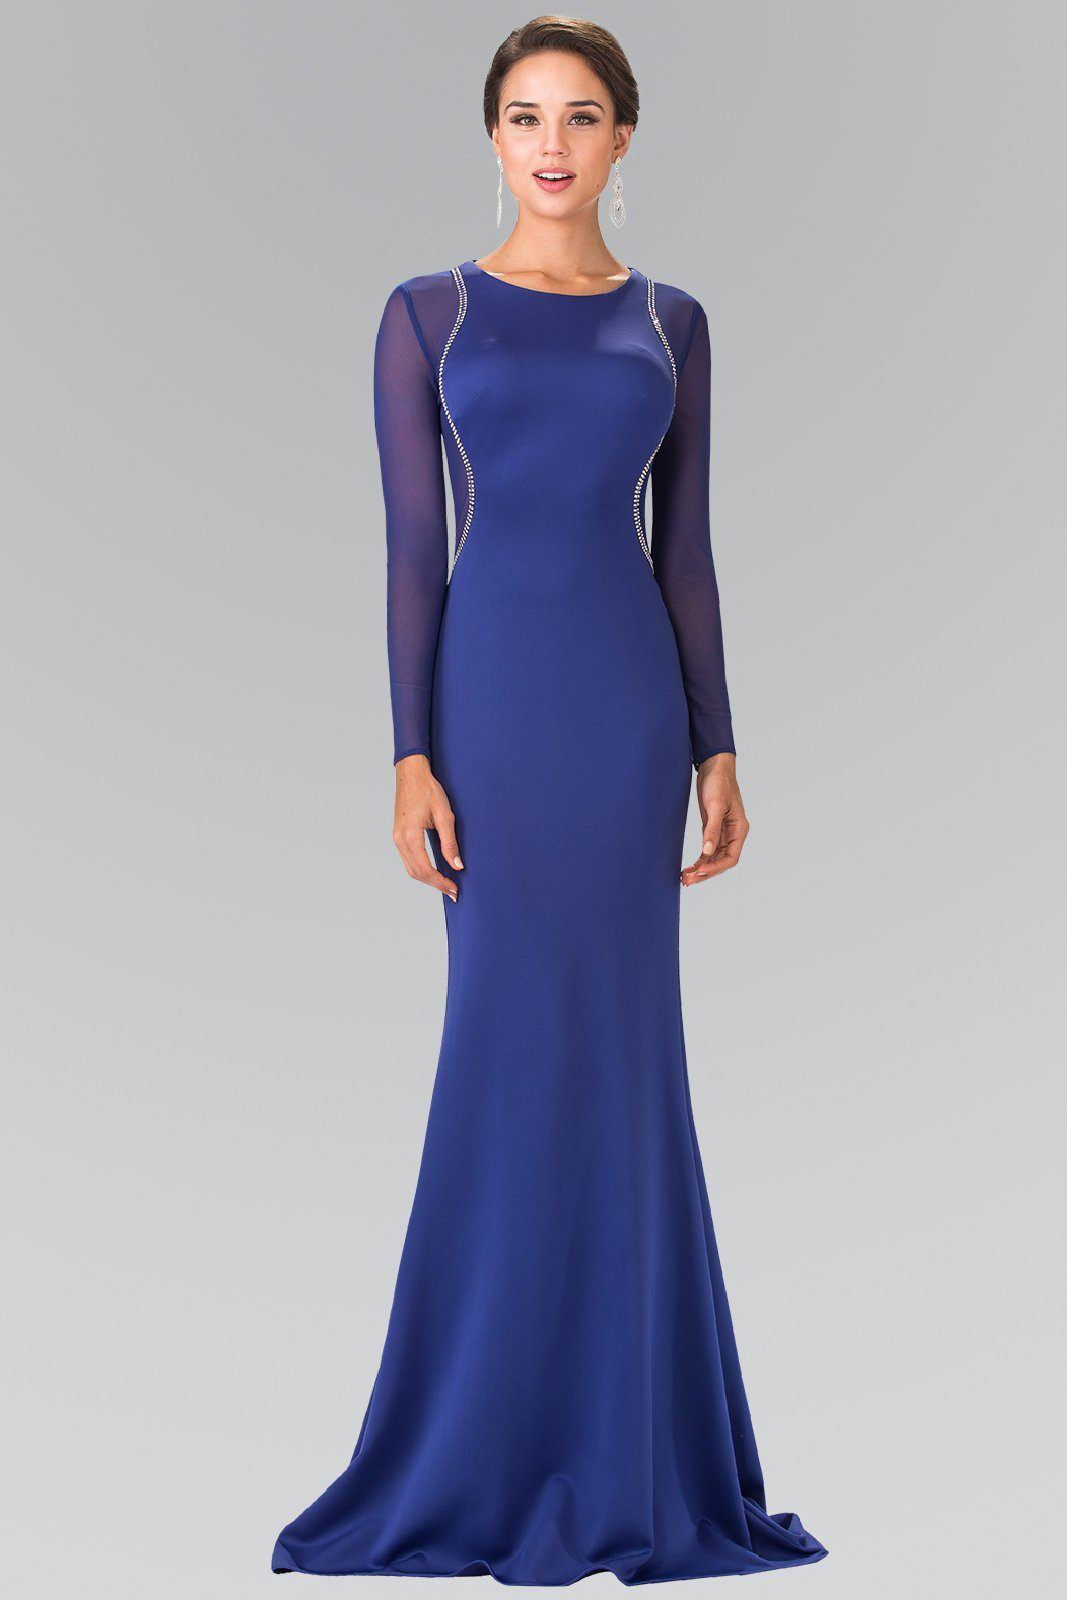 long sleeve black tie formal dress #gl2284 – Simply Fab Dress